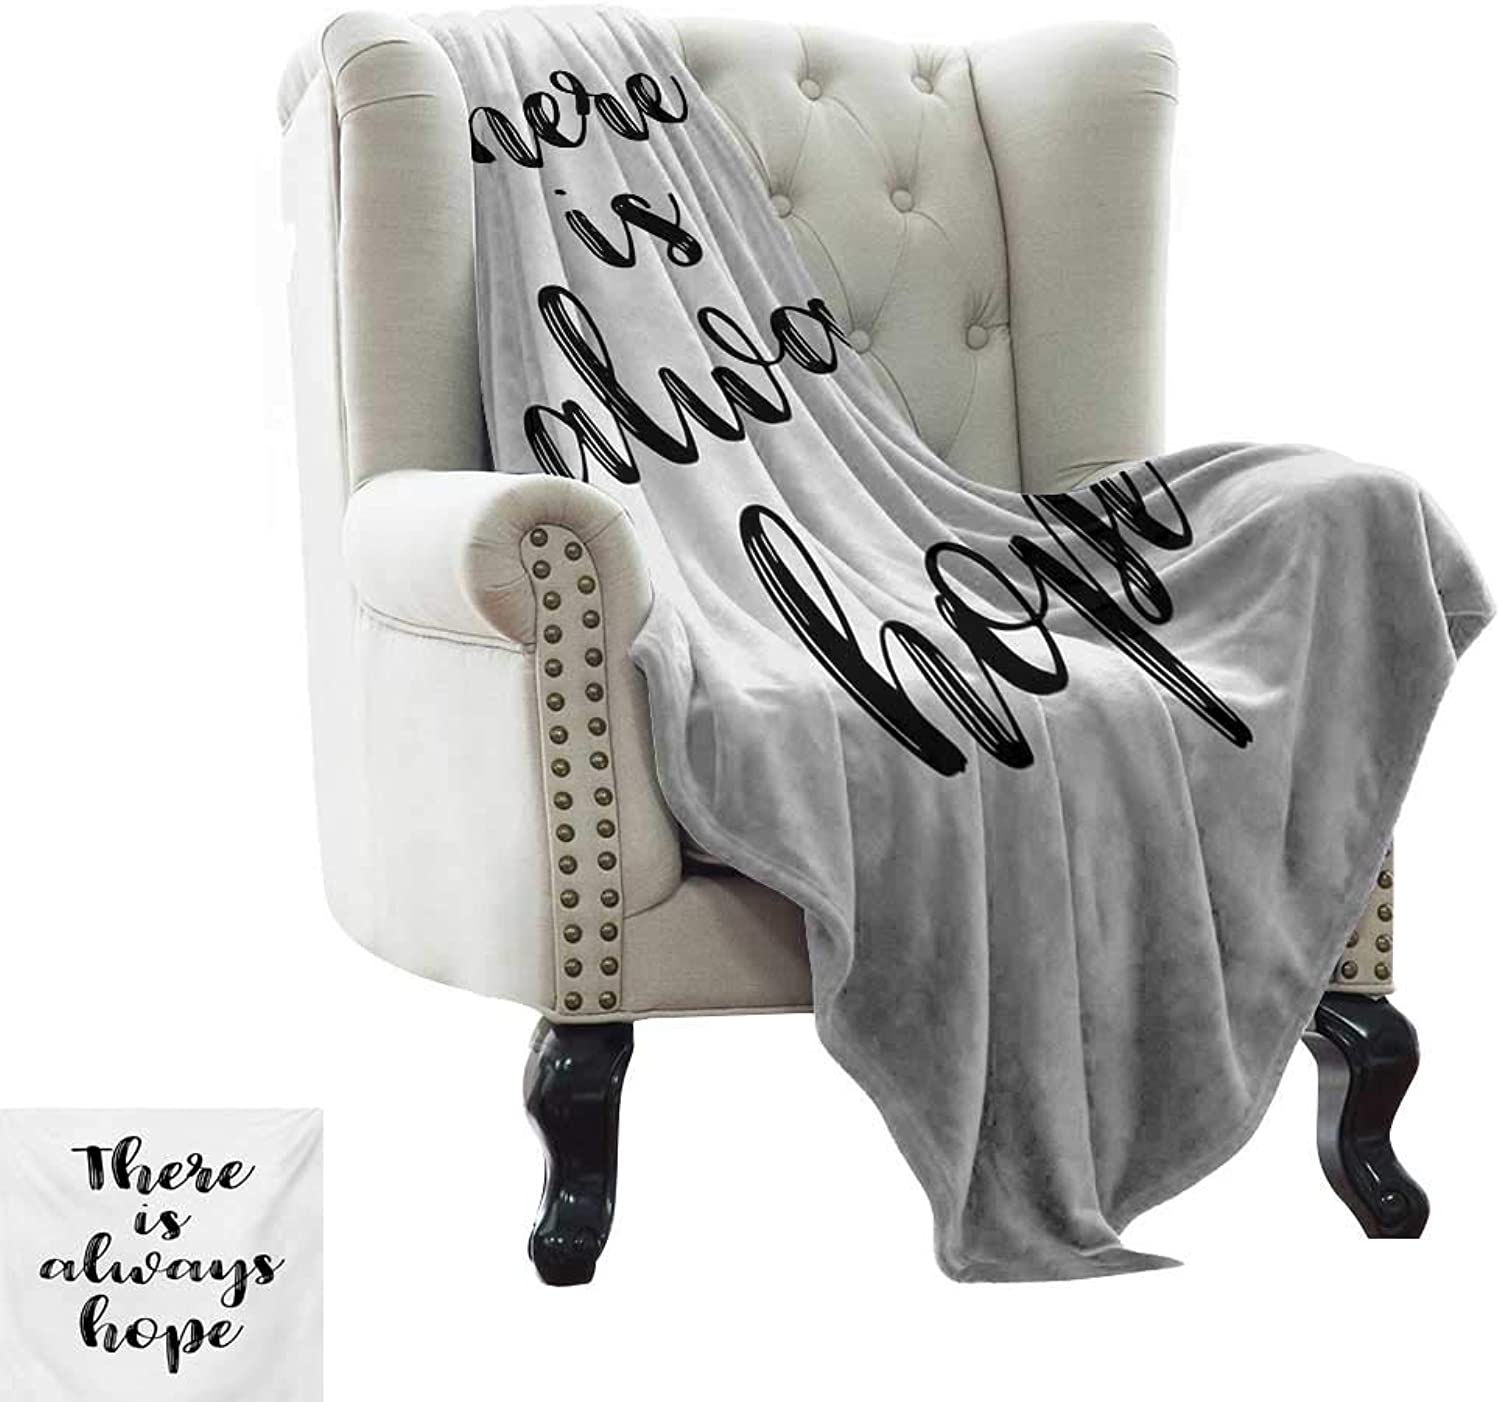 Weighted Blanket for Kids Hope,There is Always Hope Hand Lettering Style Illustration Inspirational Vintage,Black and White Microfiber All Season Blanket for Bed or Couch Multicolor 60 x62